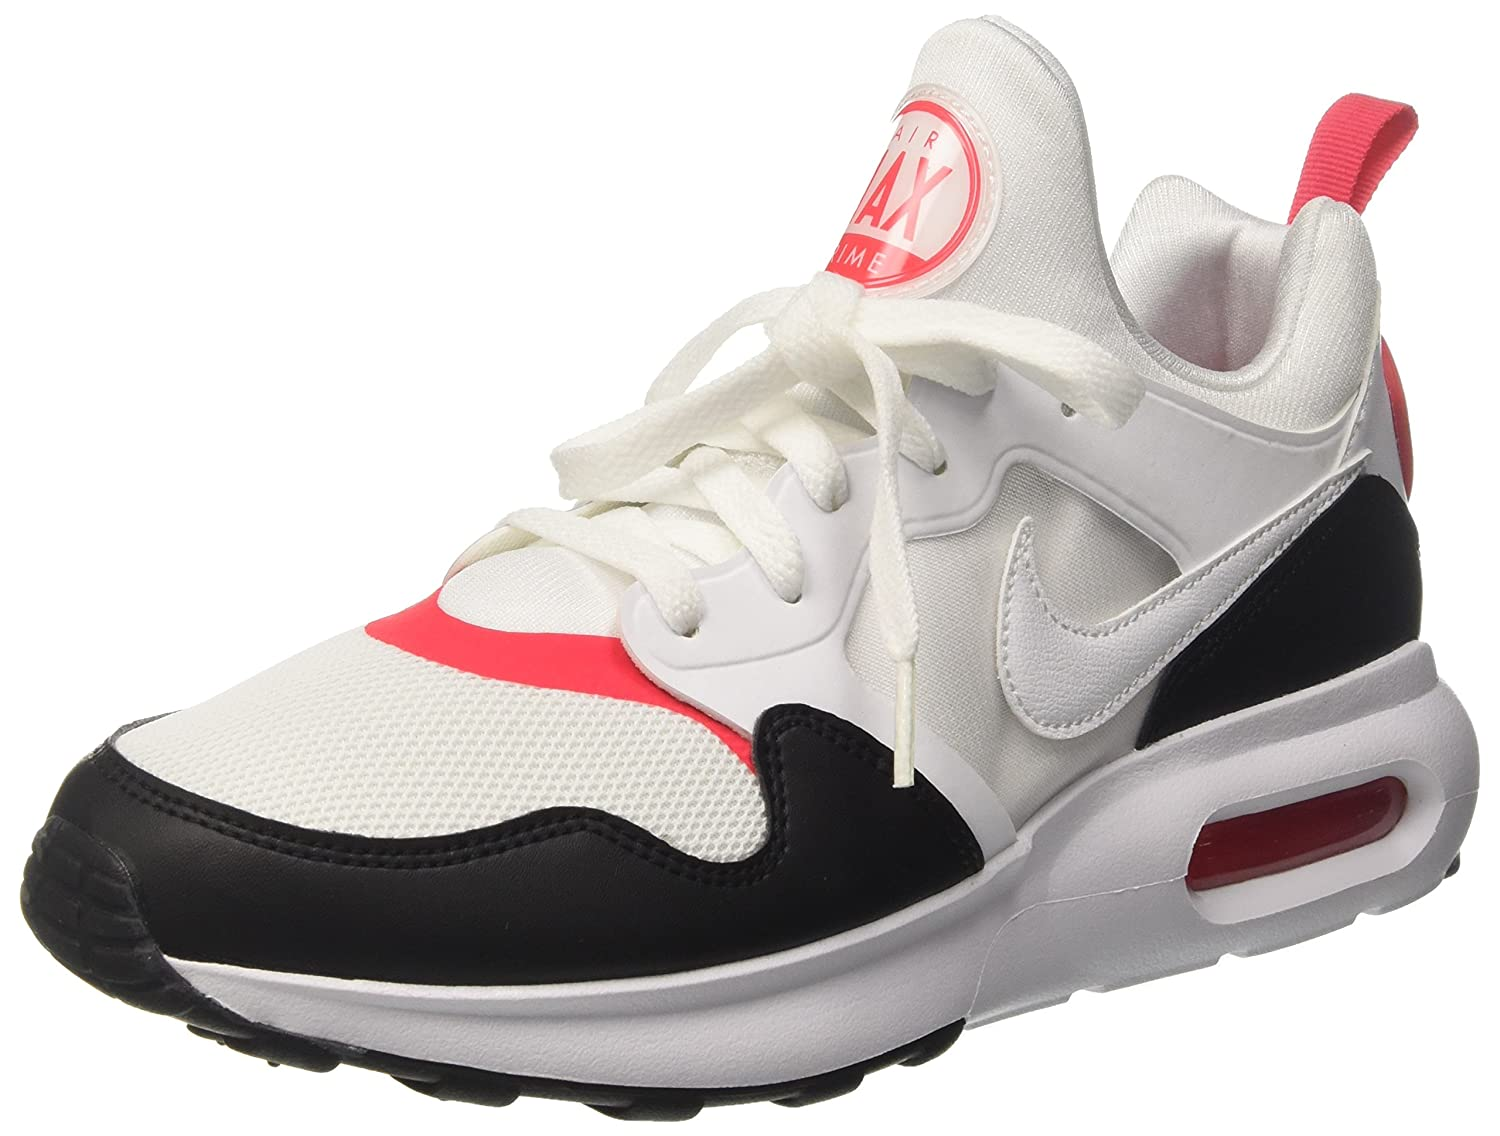 best cheap ba752 8c7d2 Amazon.com   Nike Air Max Prime Mens Style  876068-102 Size  7.5 M US    Road Running